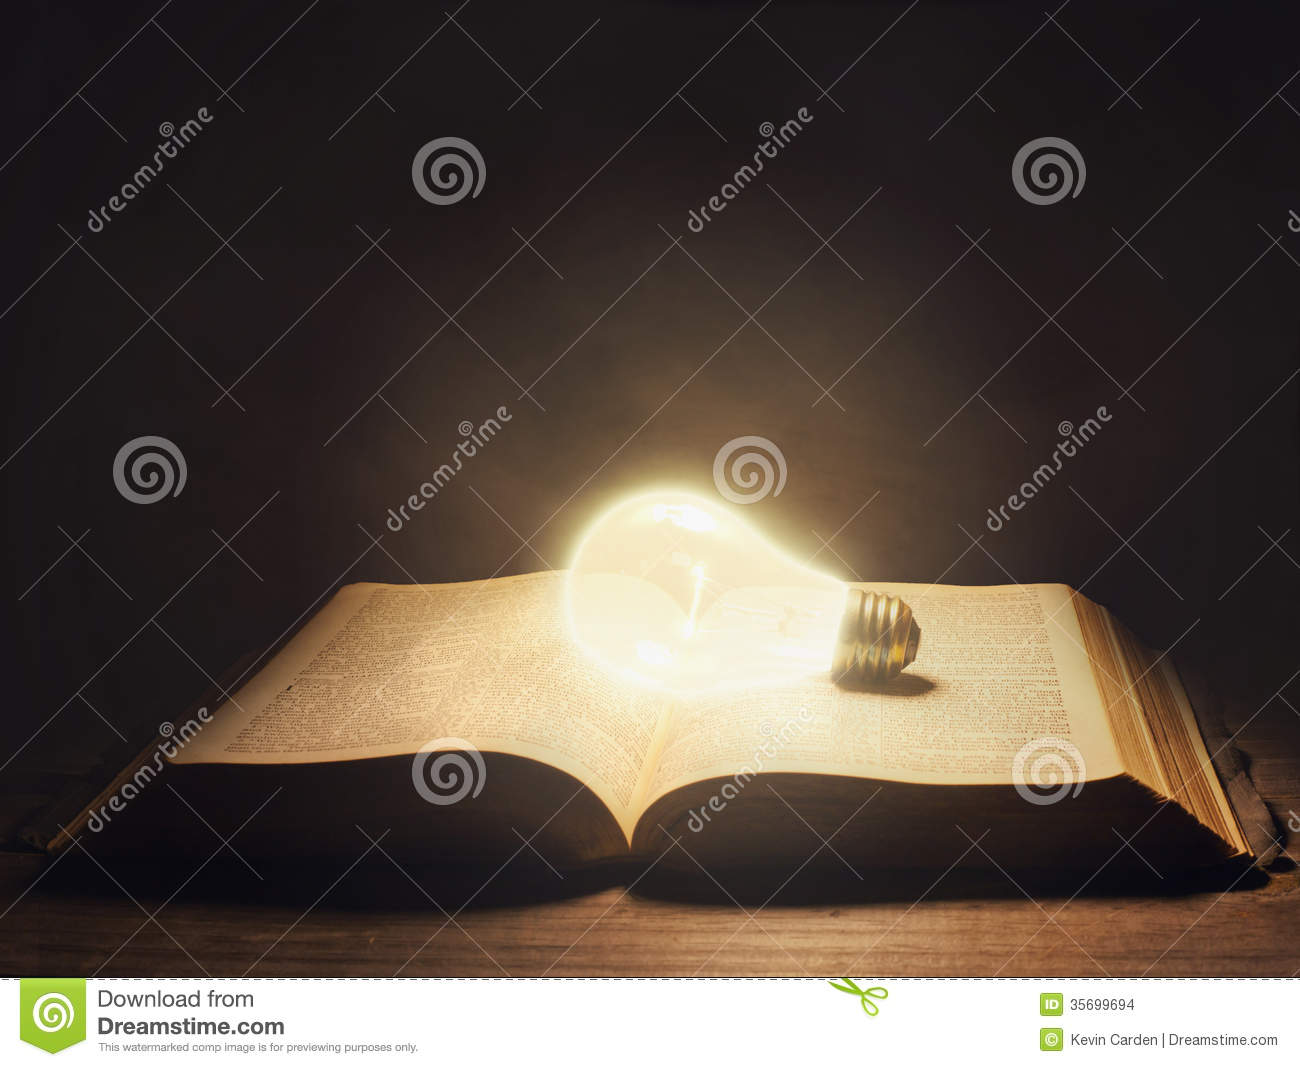 lamp and bible - photo #45